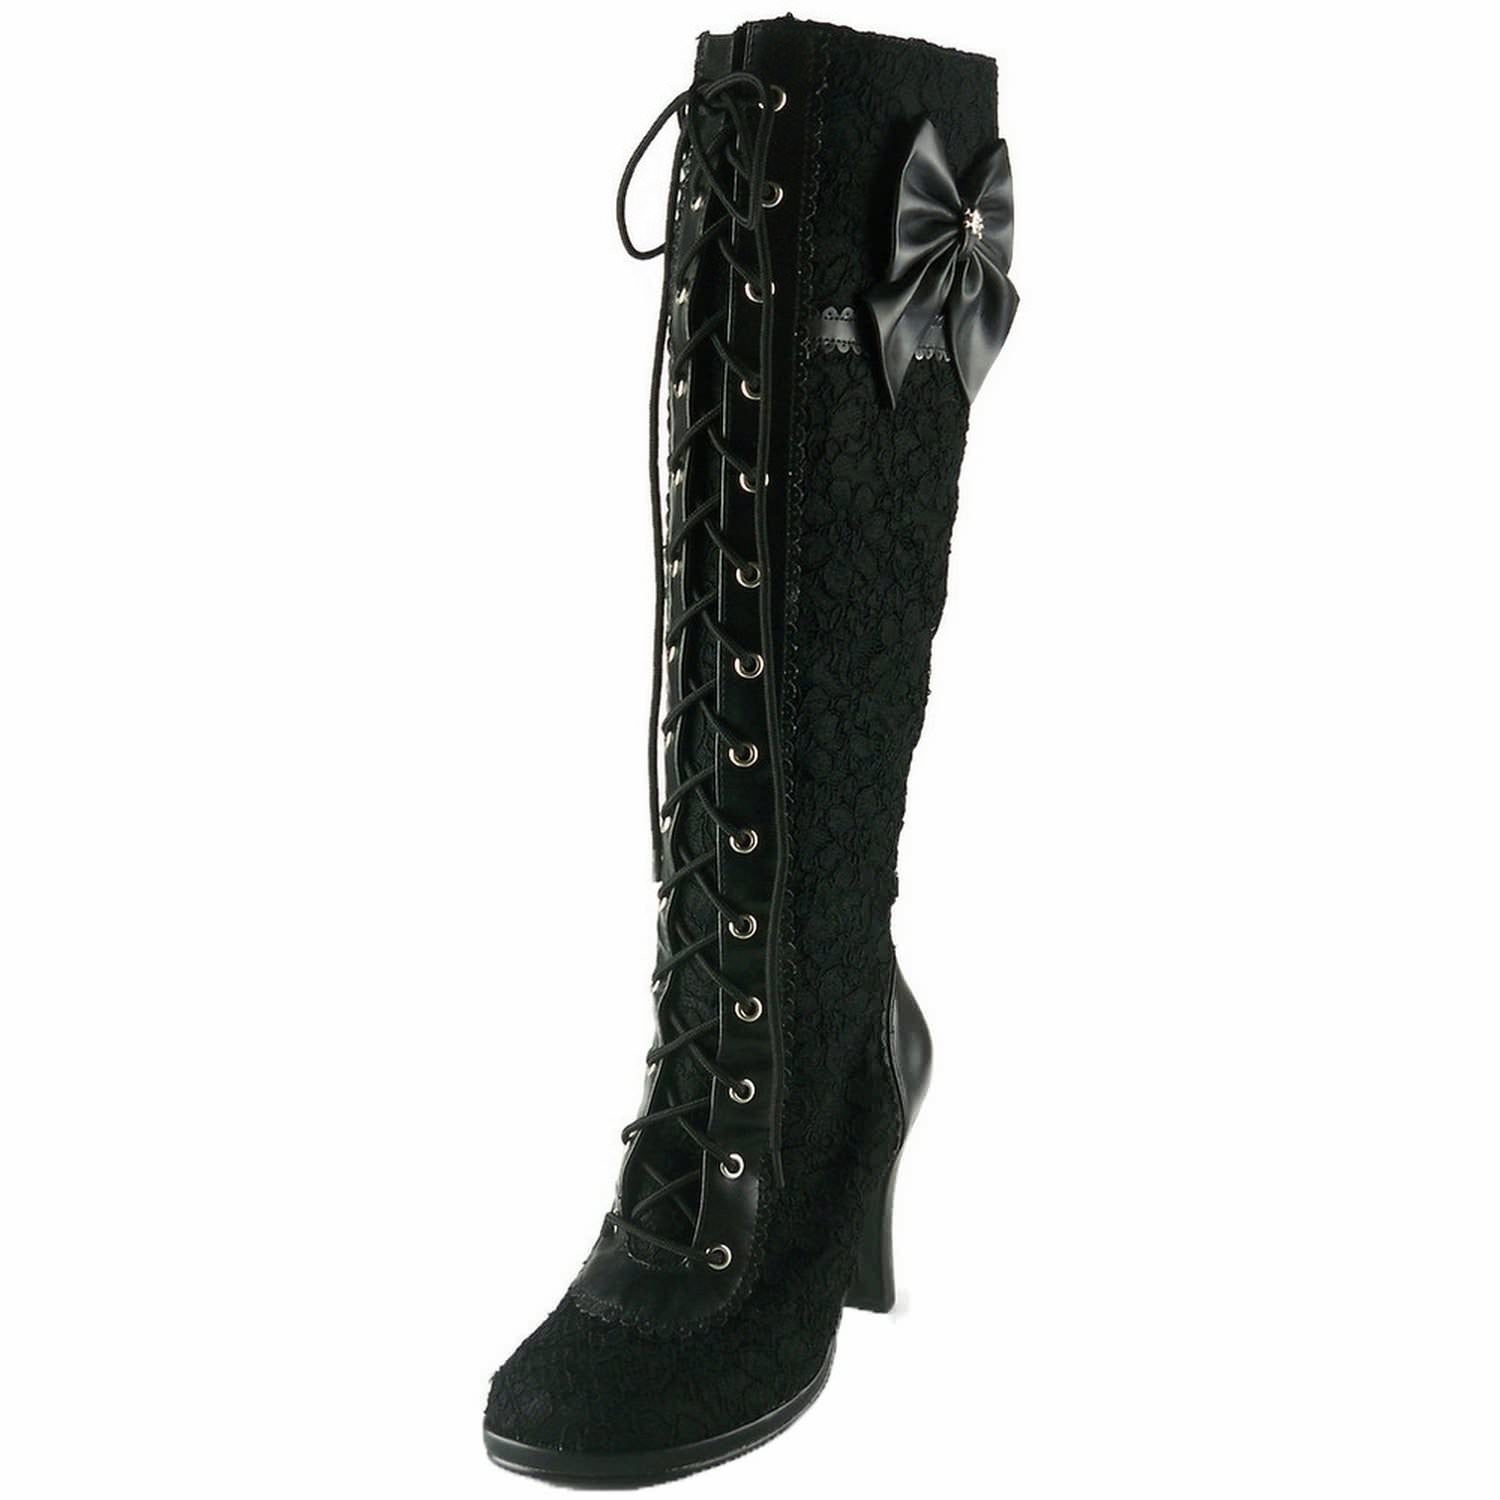 DEMONIA GLAM-240 Steampunk Lolita Cosplay Goth Victorian Boots - Shoecup.com - 1